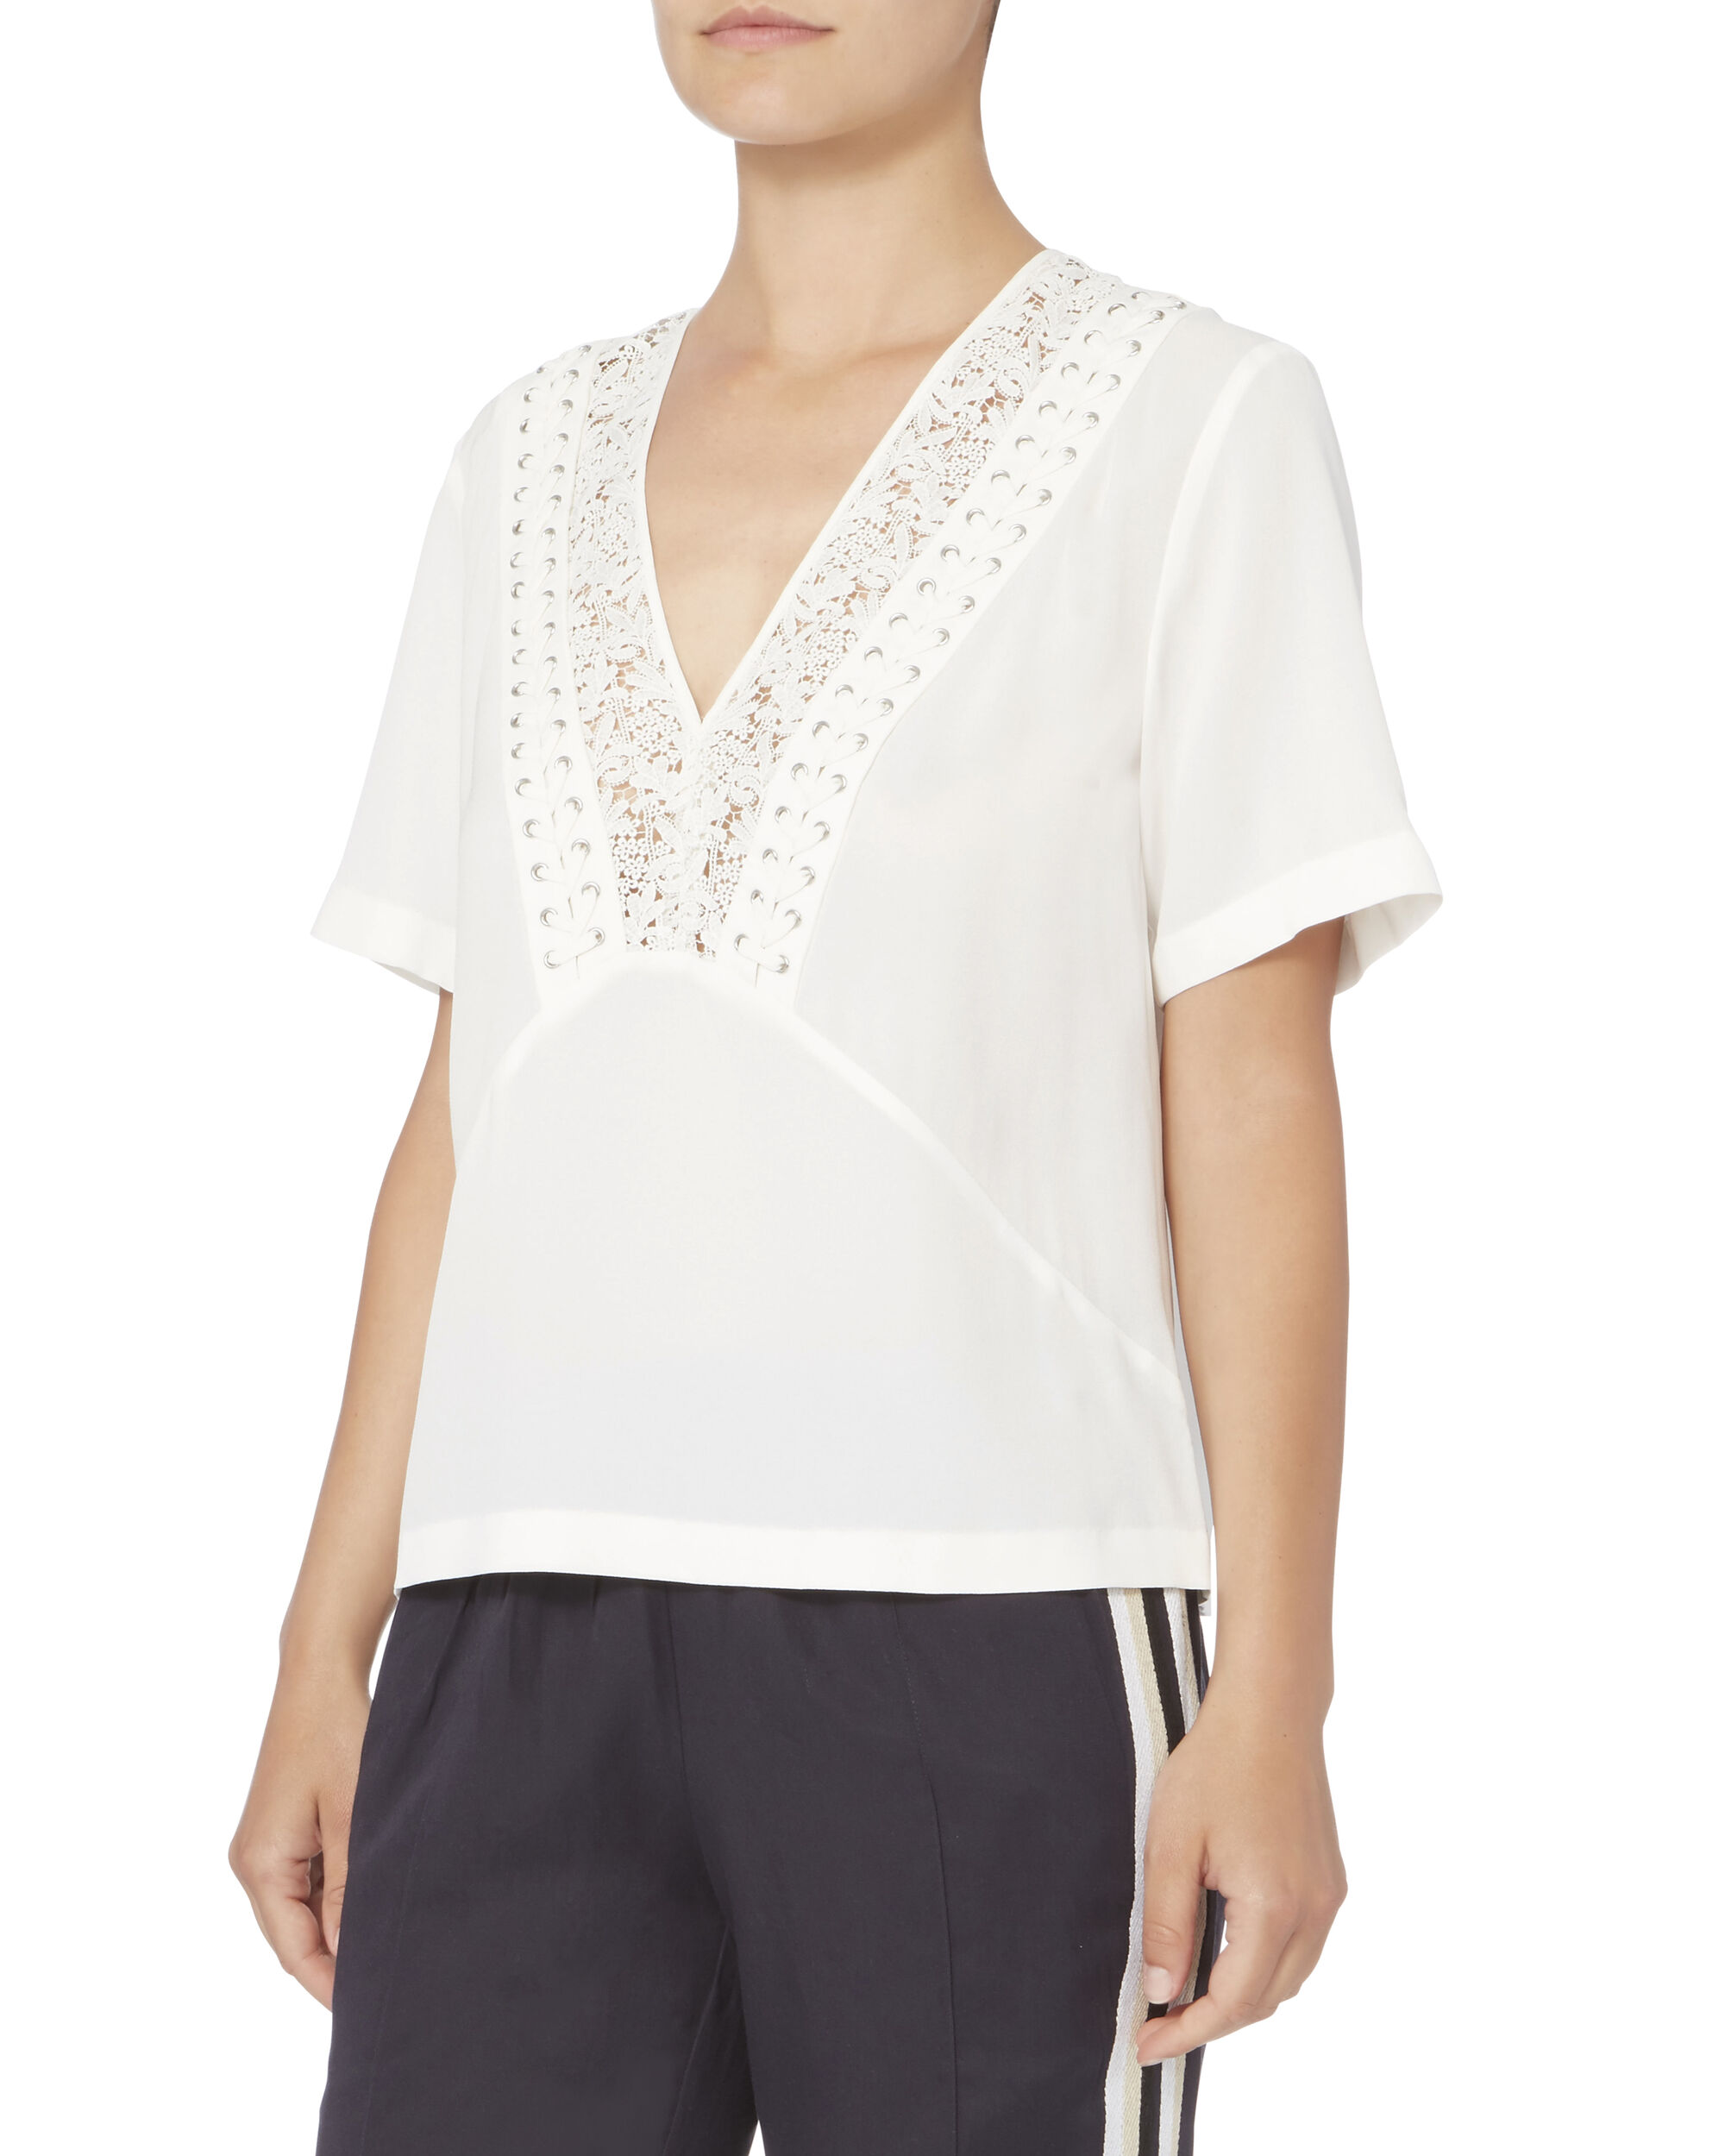 Annora Lace-Up Silk Top, WHITE, hi-res